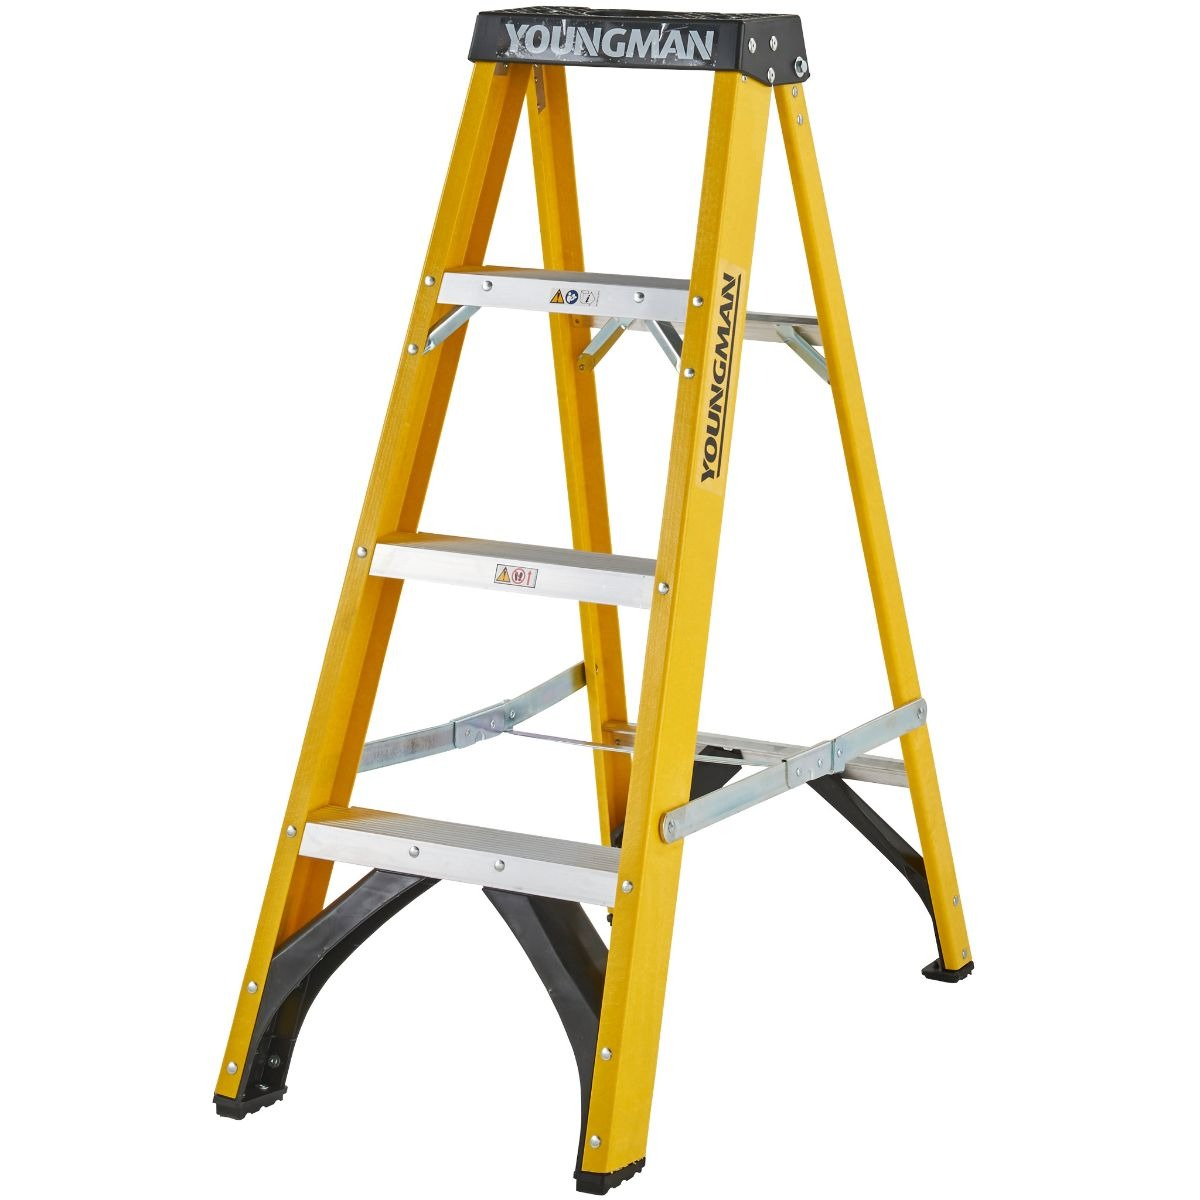 Youngman 527444 S400 1.2m Stepladder 6.79Kg